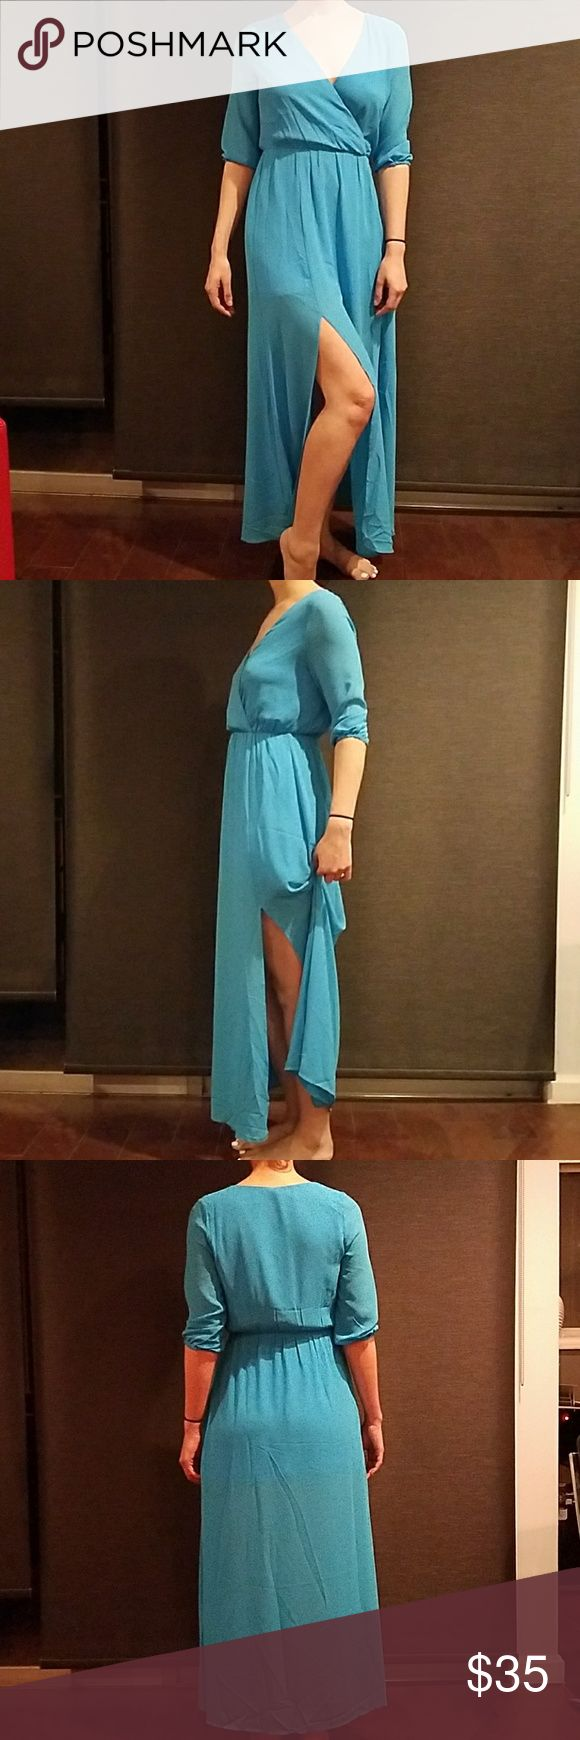 DOUBLE SLIT MAXI DRESS DOUBLE SLIT MAXI DRESS  COLOR LIGHT TURQUOISE  DEEP V NECK  ELASTIC WAIST  FULLY LINED  3/4 LENGTH SLEEVE Dresses Maxi